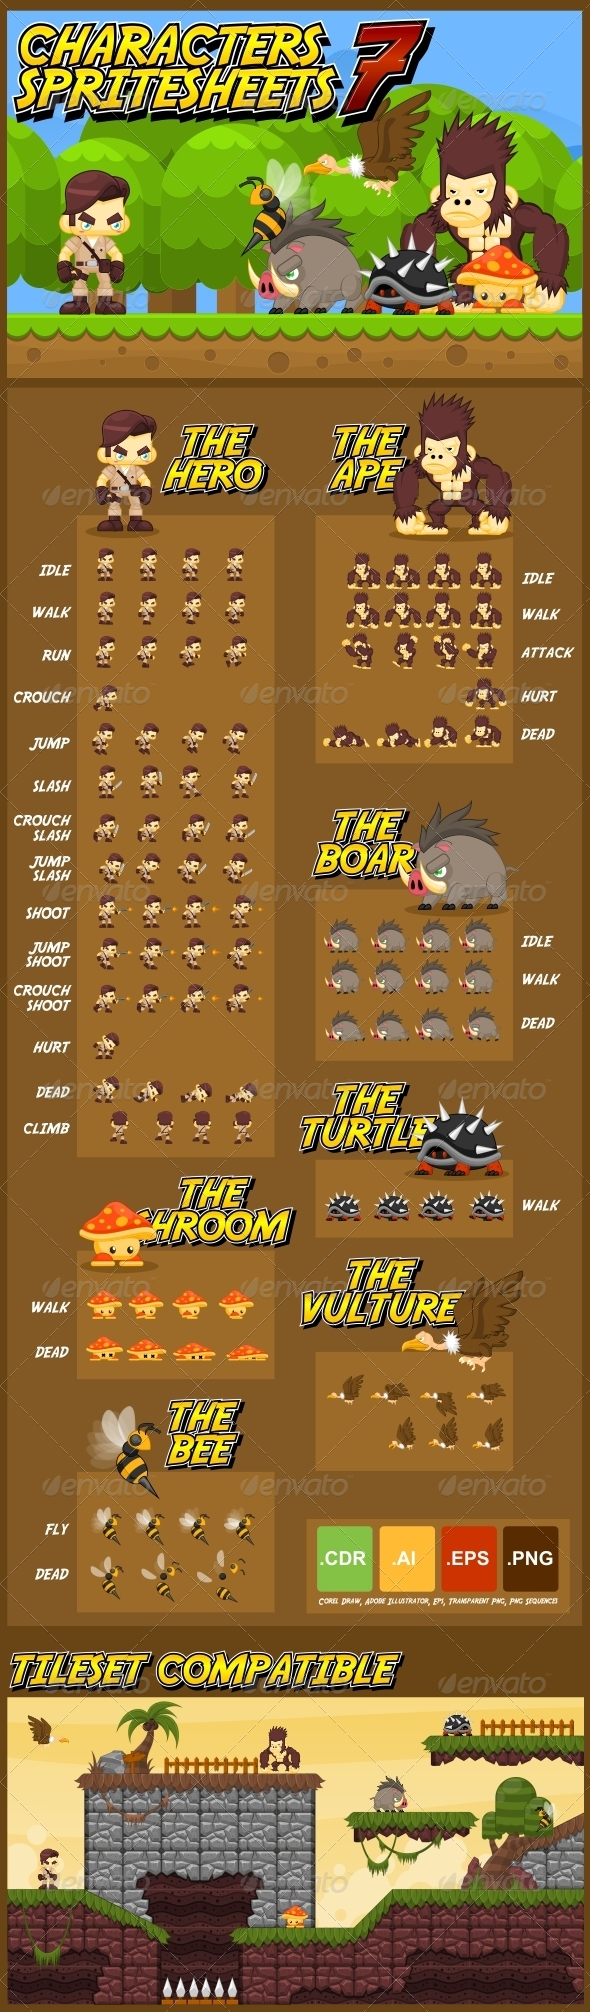 GraphicRiver Characters Spritesheet 7 6232362